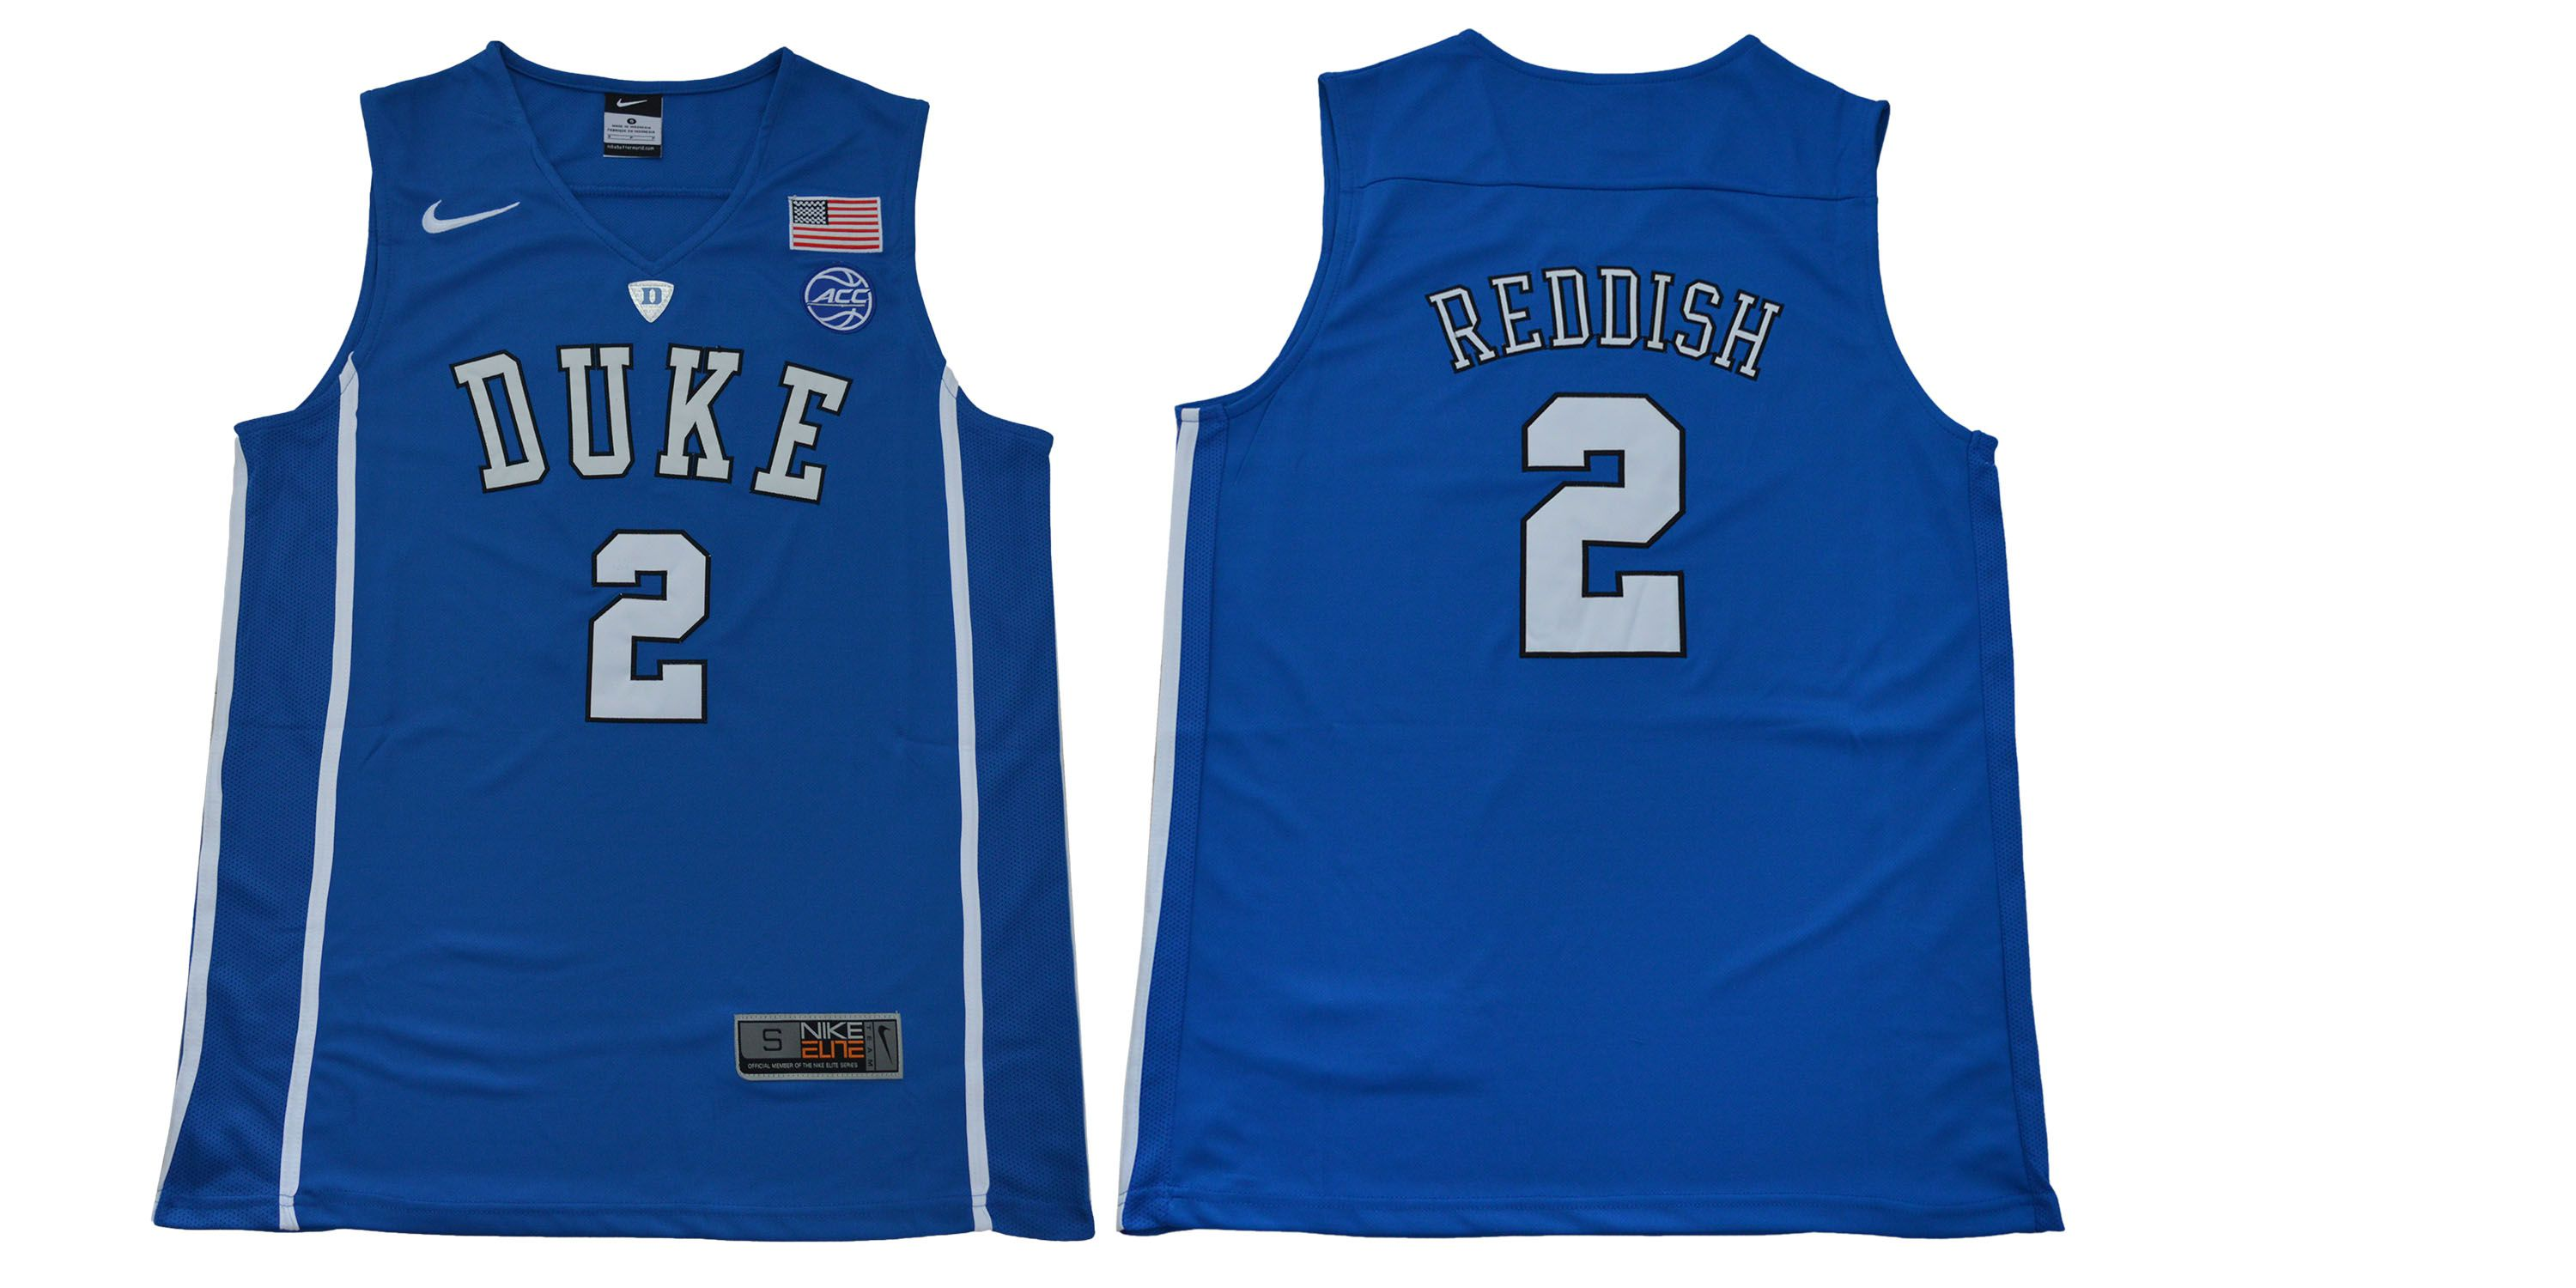 Men Duke Blue Devils 2 Reddish Blue NBA NCAA Jerseys